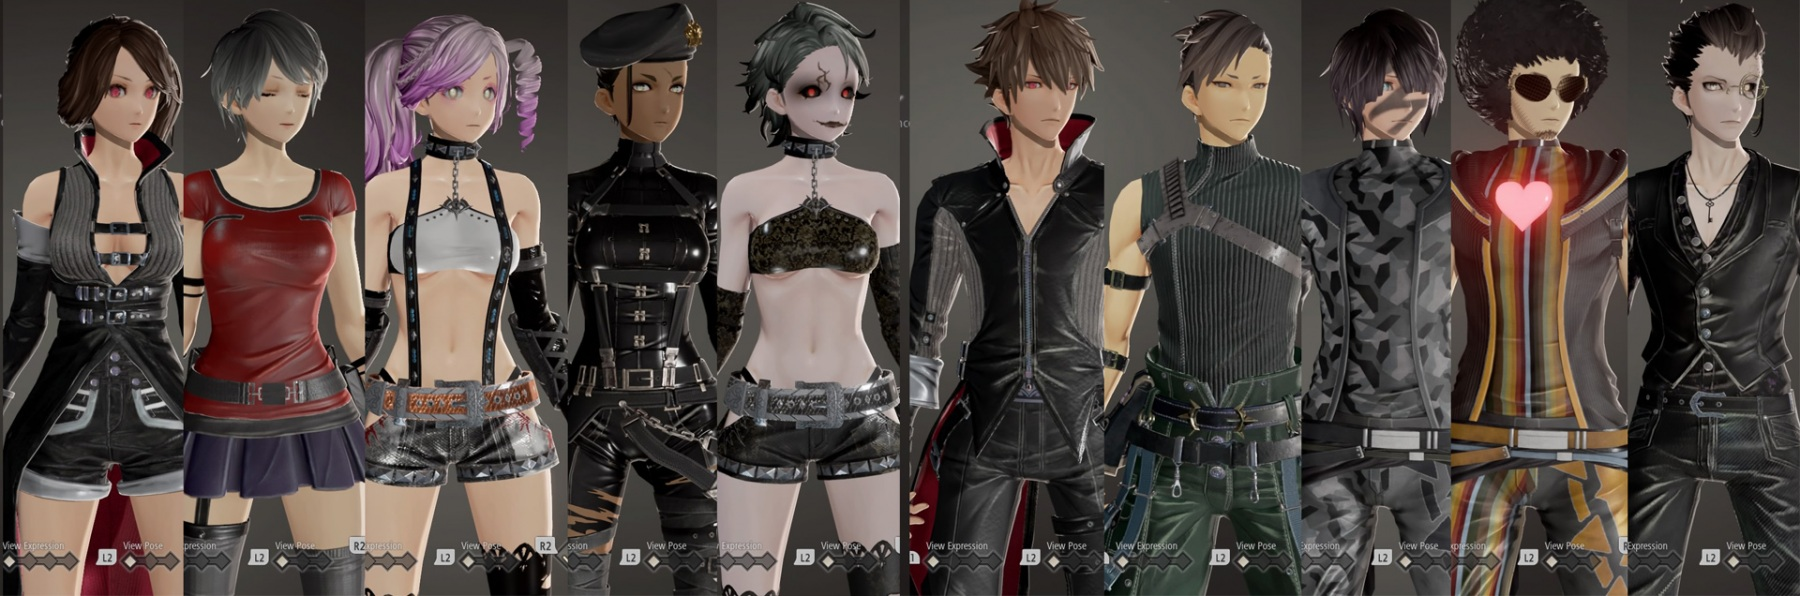 CODE-VEIN_all_characters